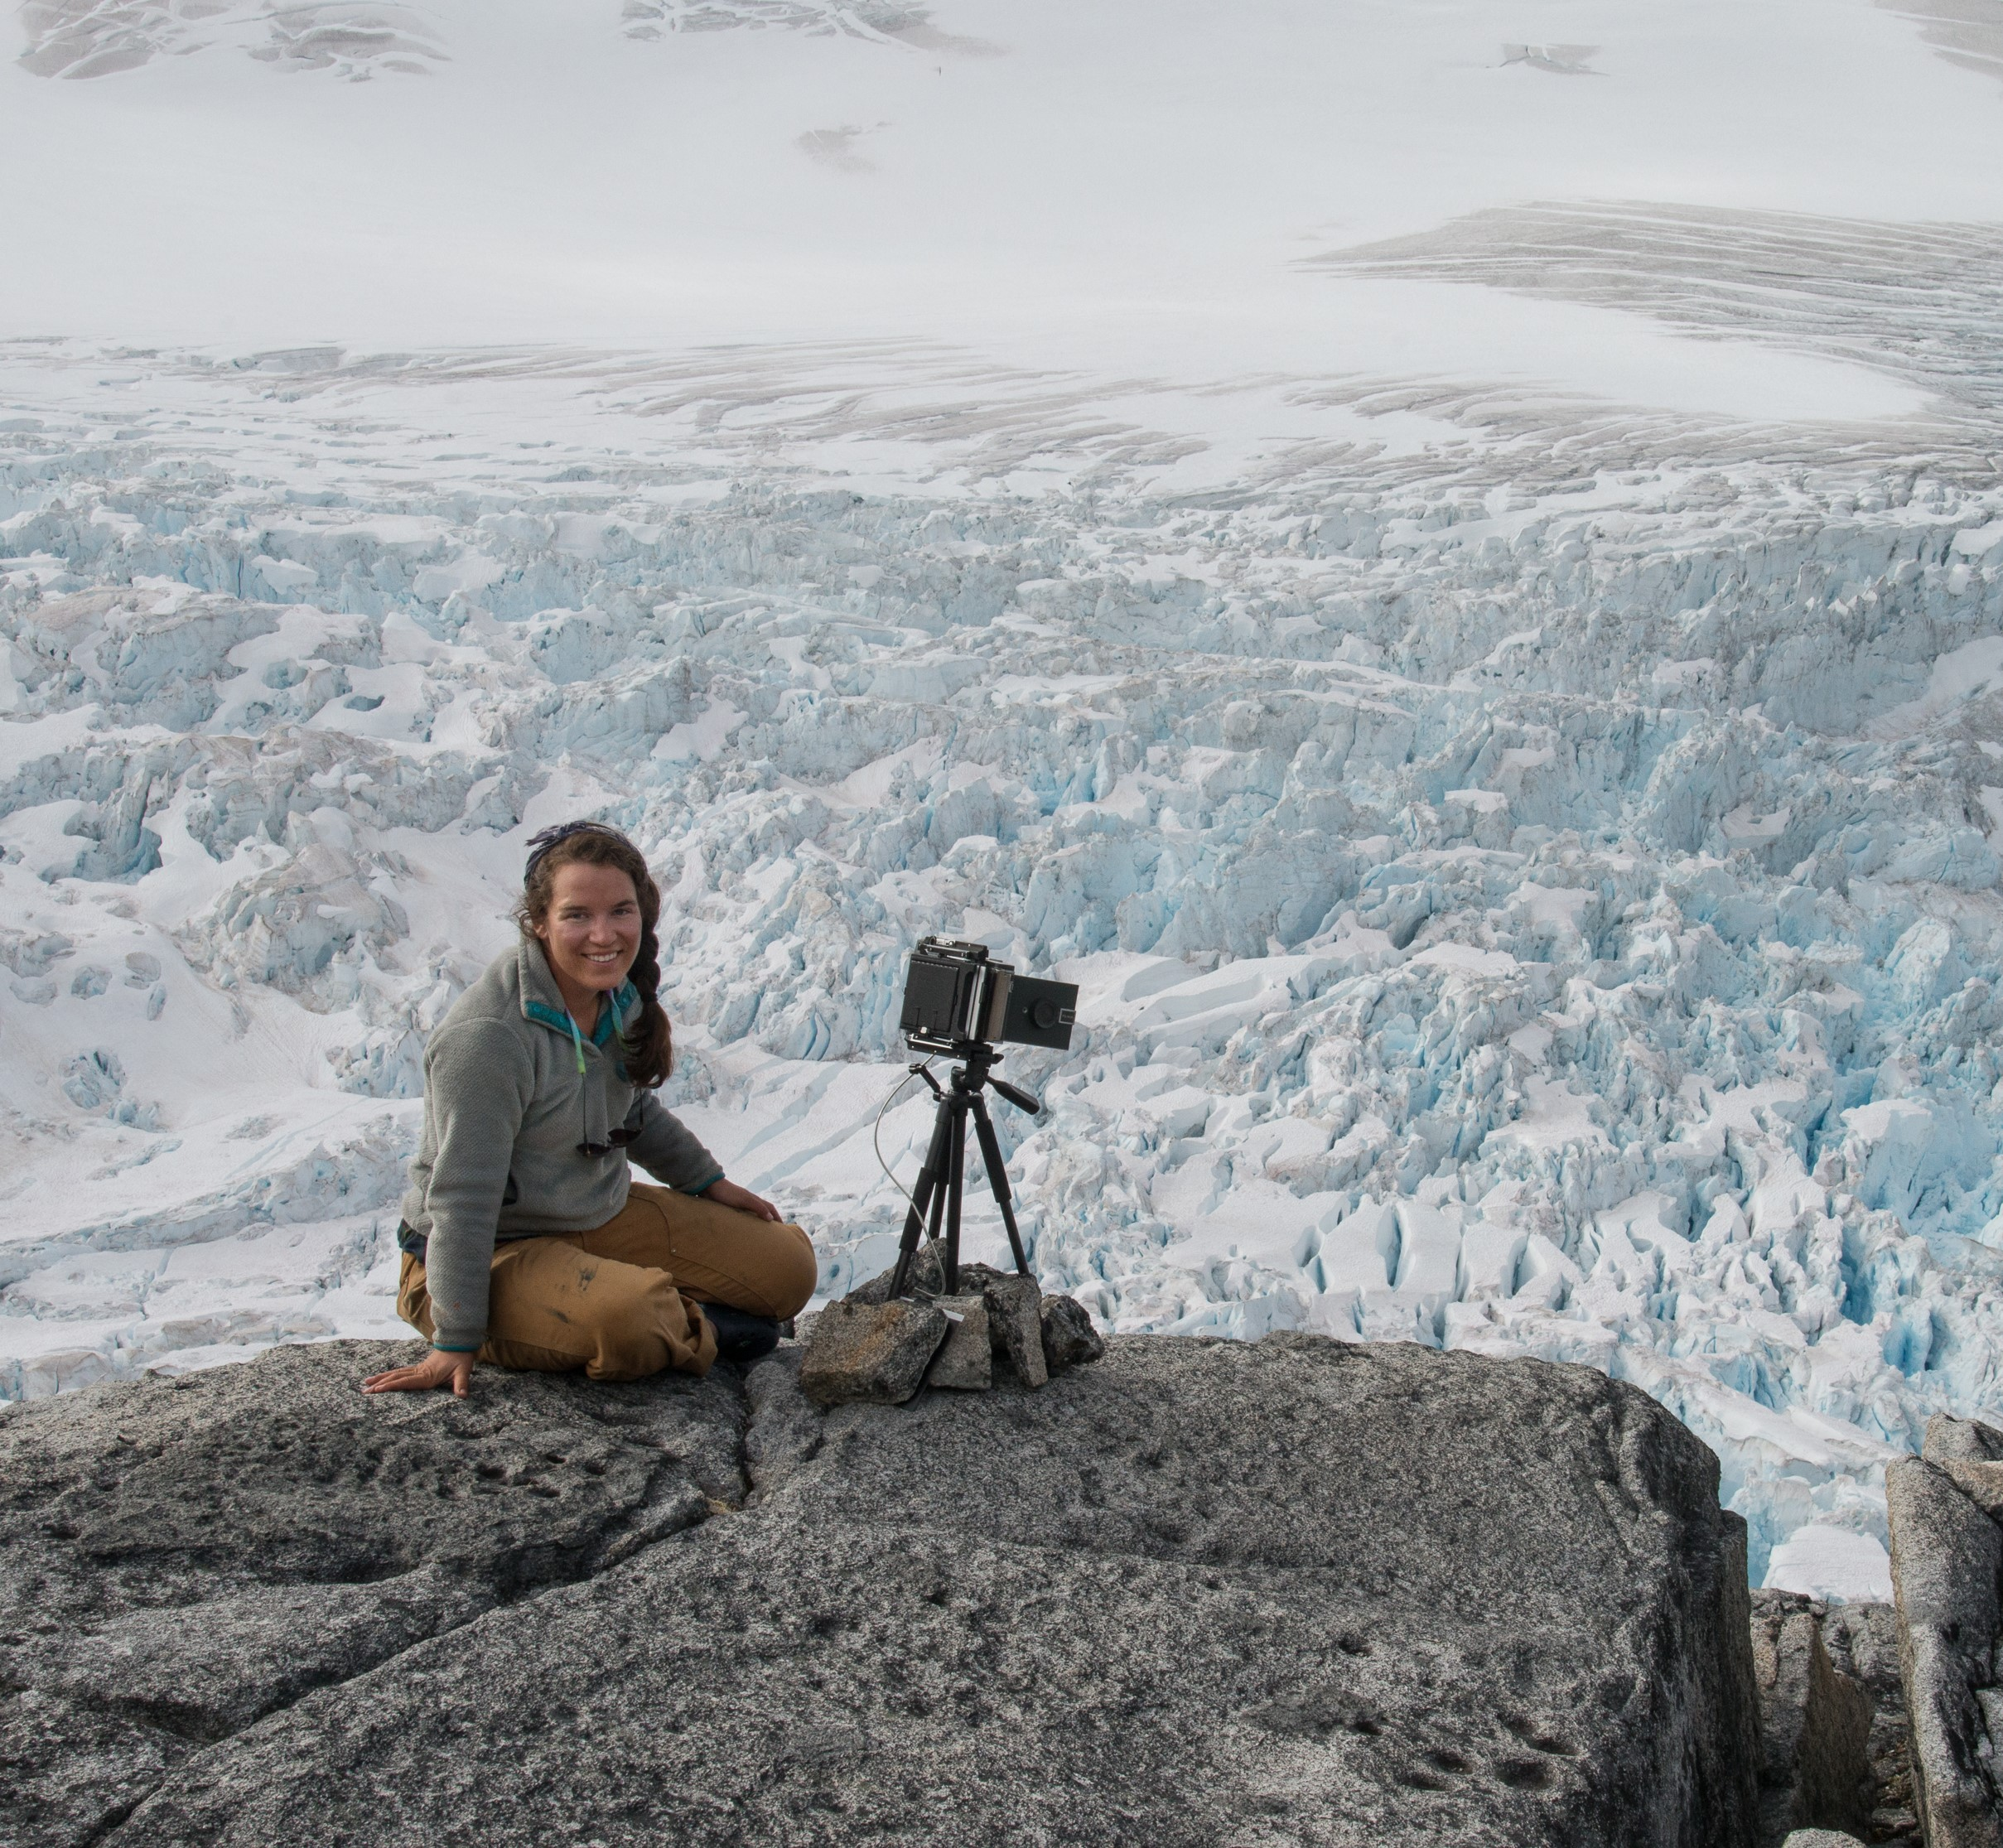 Hannah experiments with photography on cyanotype paper over the Vaughan Lewis Icefall. PC: B. Huff.